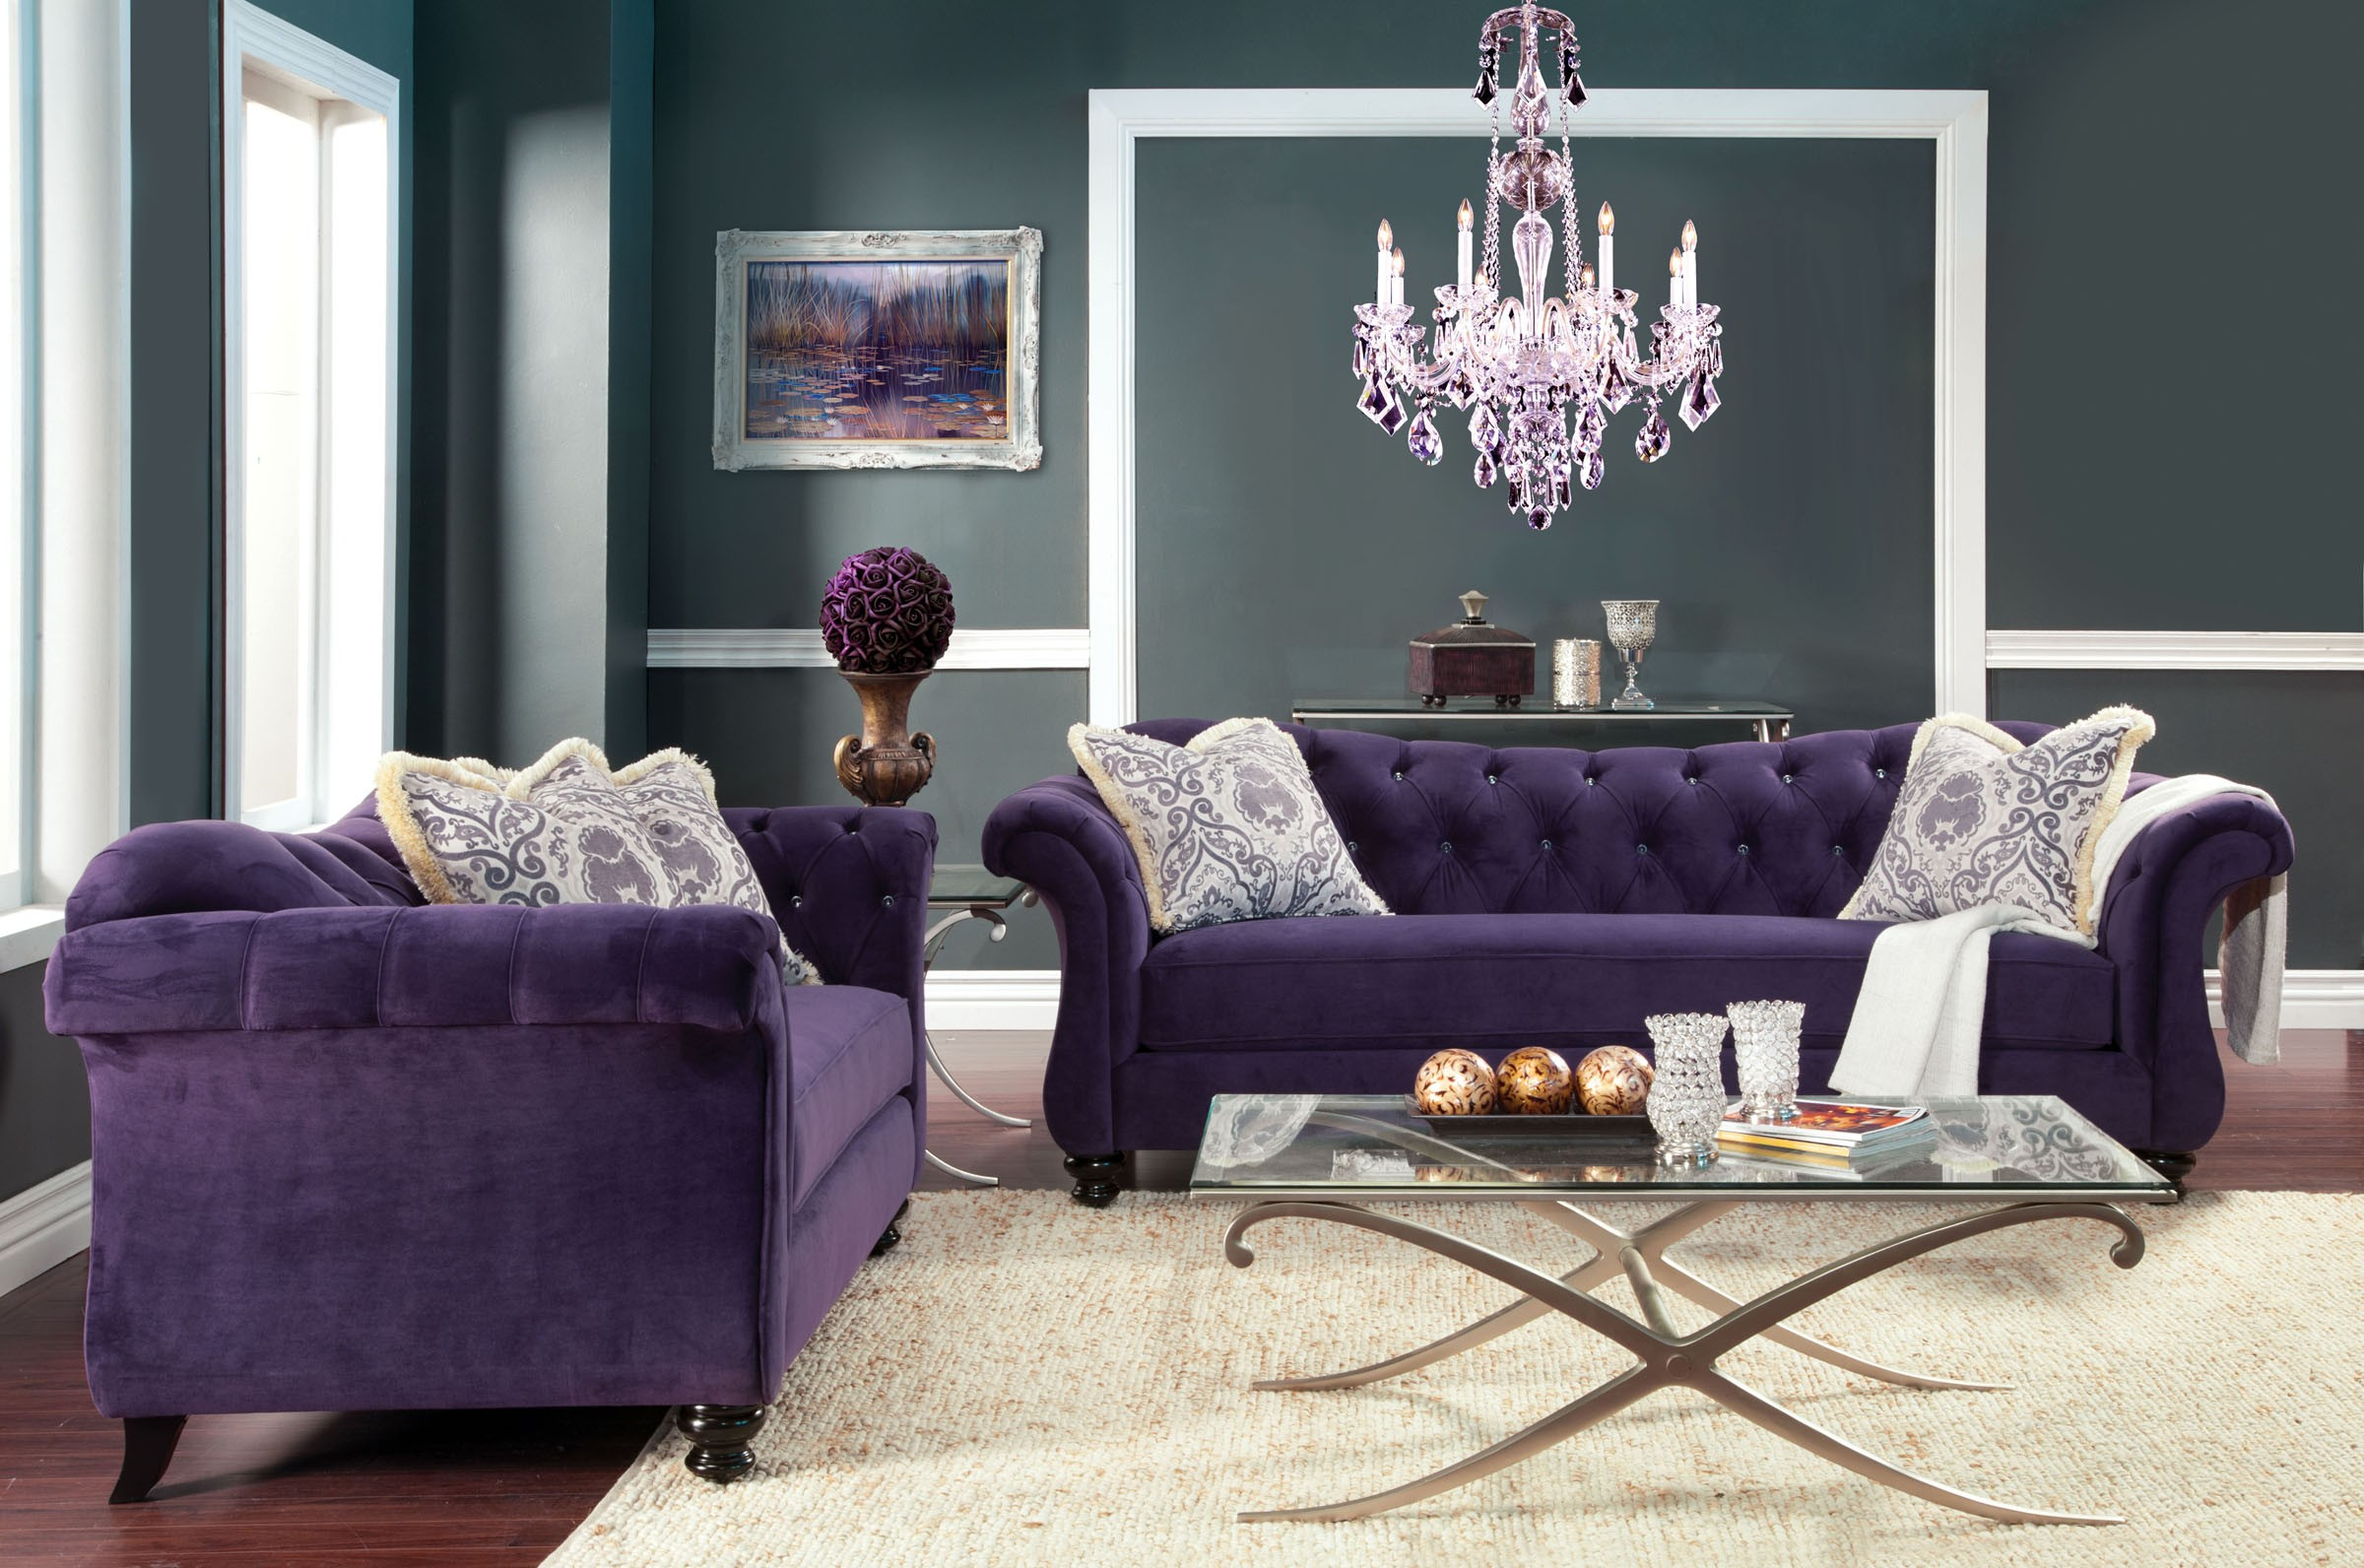 25 best chesterfield sofas to buy in 2018 2 piece antoinette collection purple chesterfield love seat and sofa set parisarafo Gallery